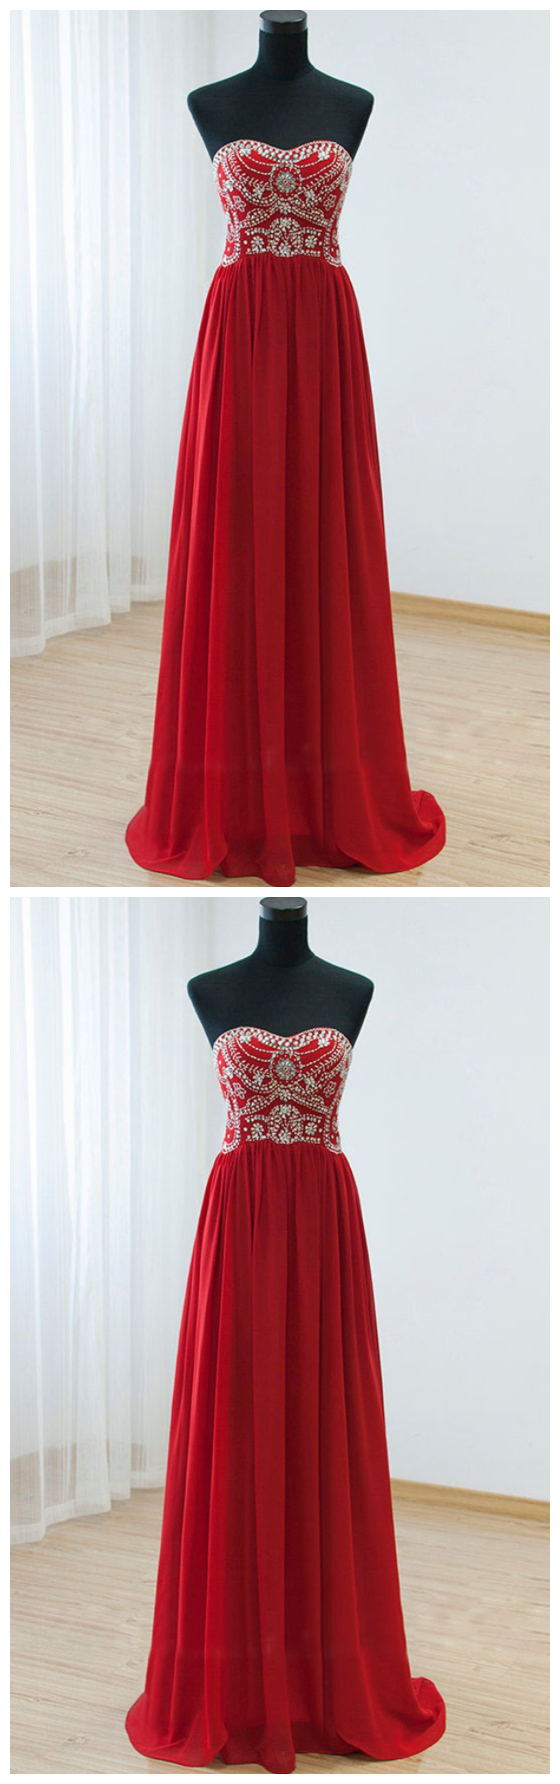 Empire Waist Red Backless Sexy Long Prom Evening Dress